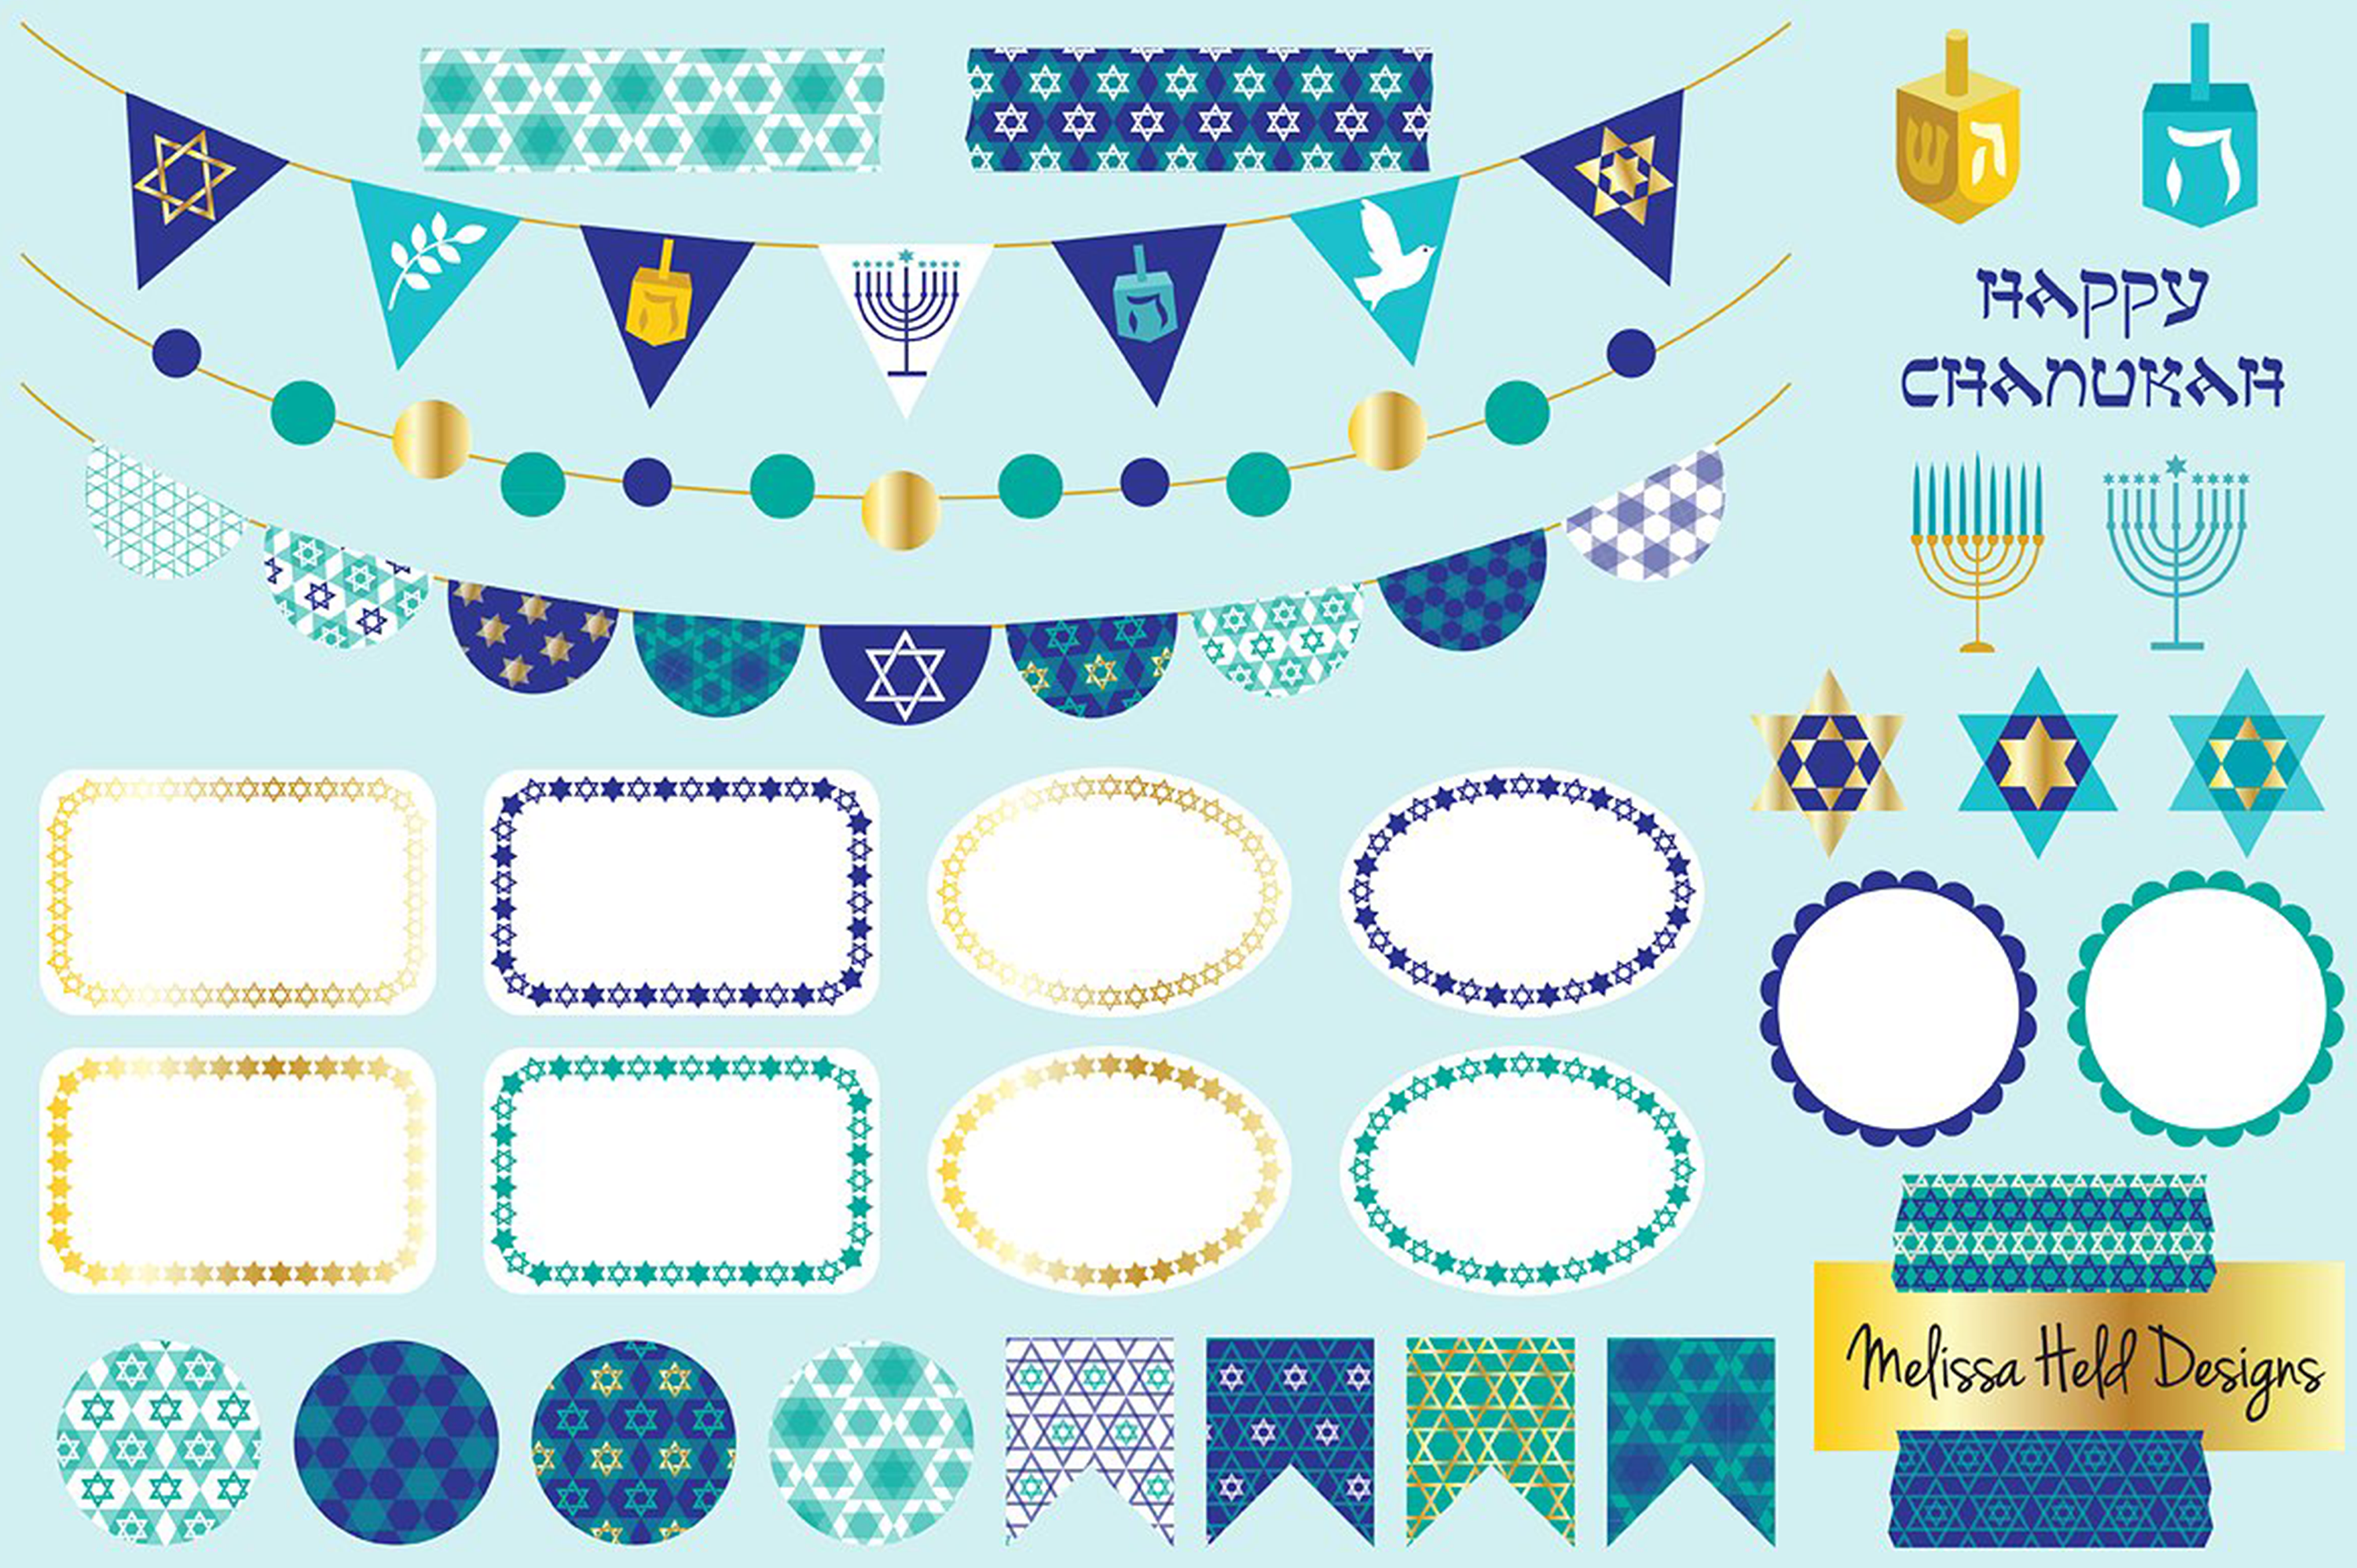 Chanukah Bunting and Labels Clipart example image 1